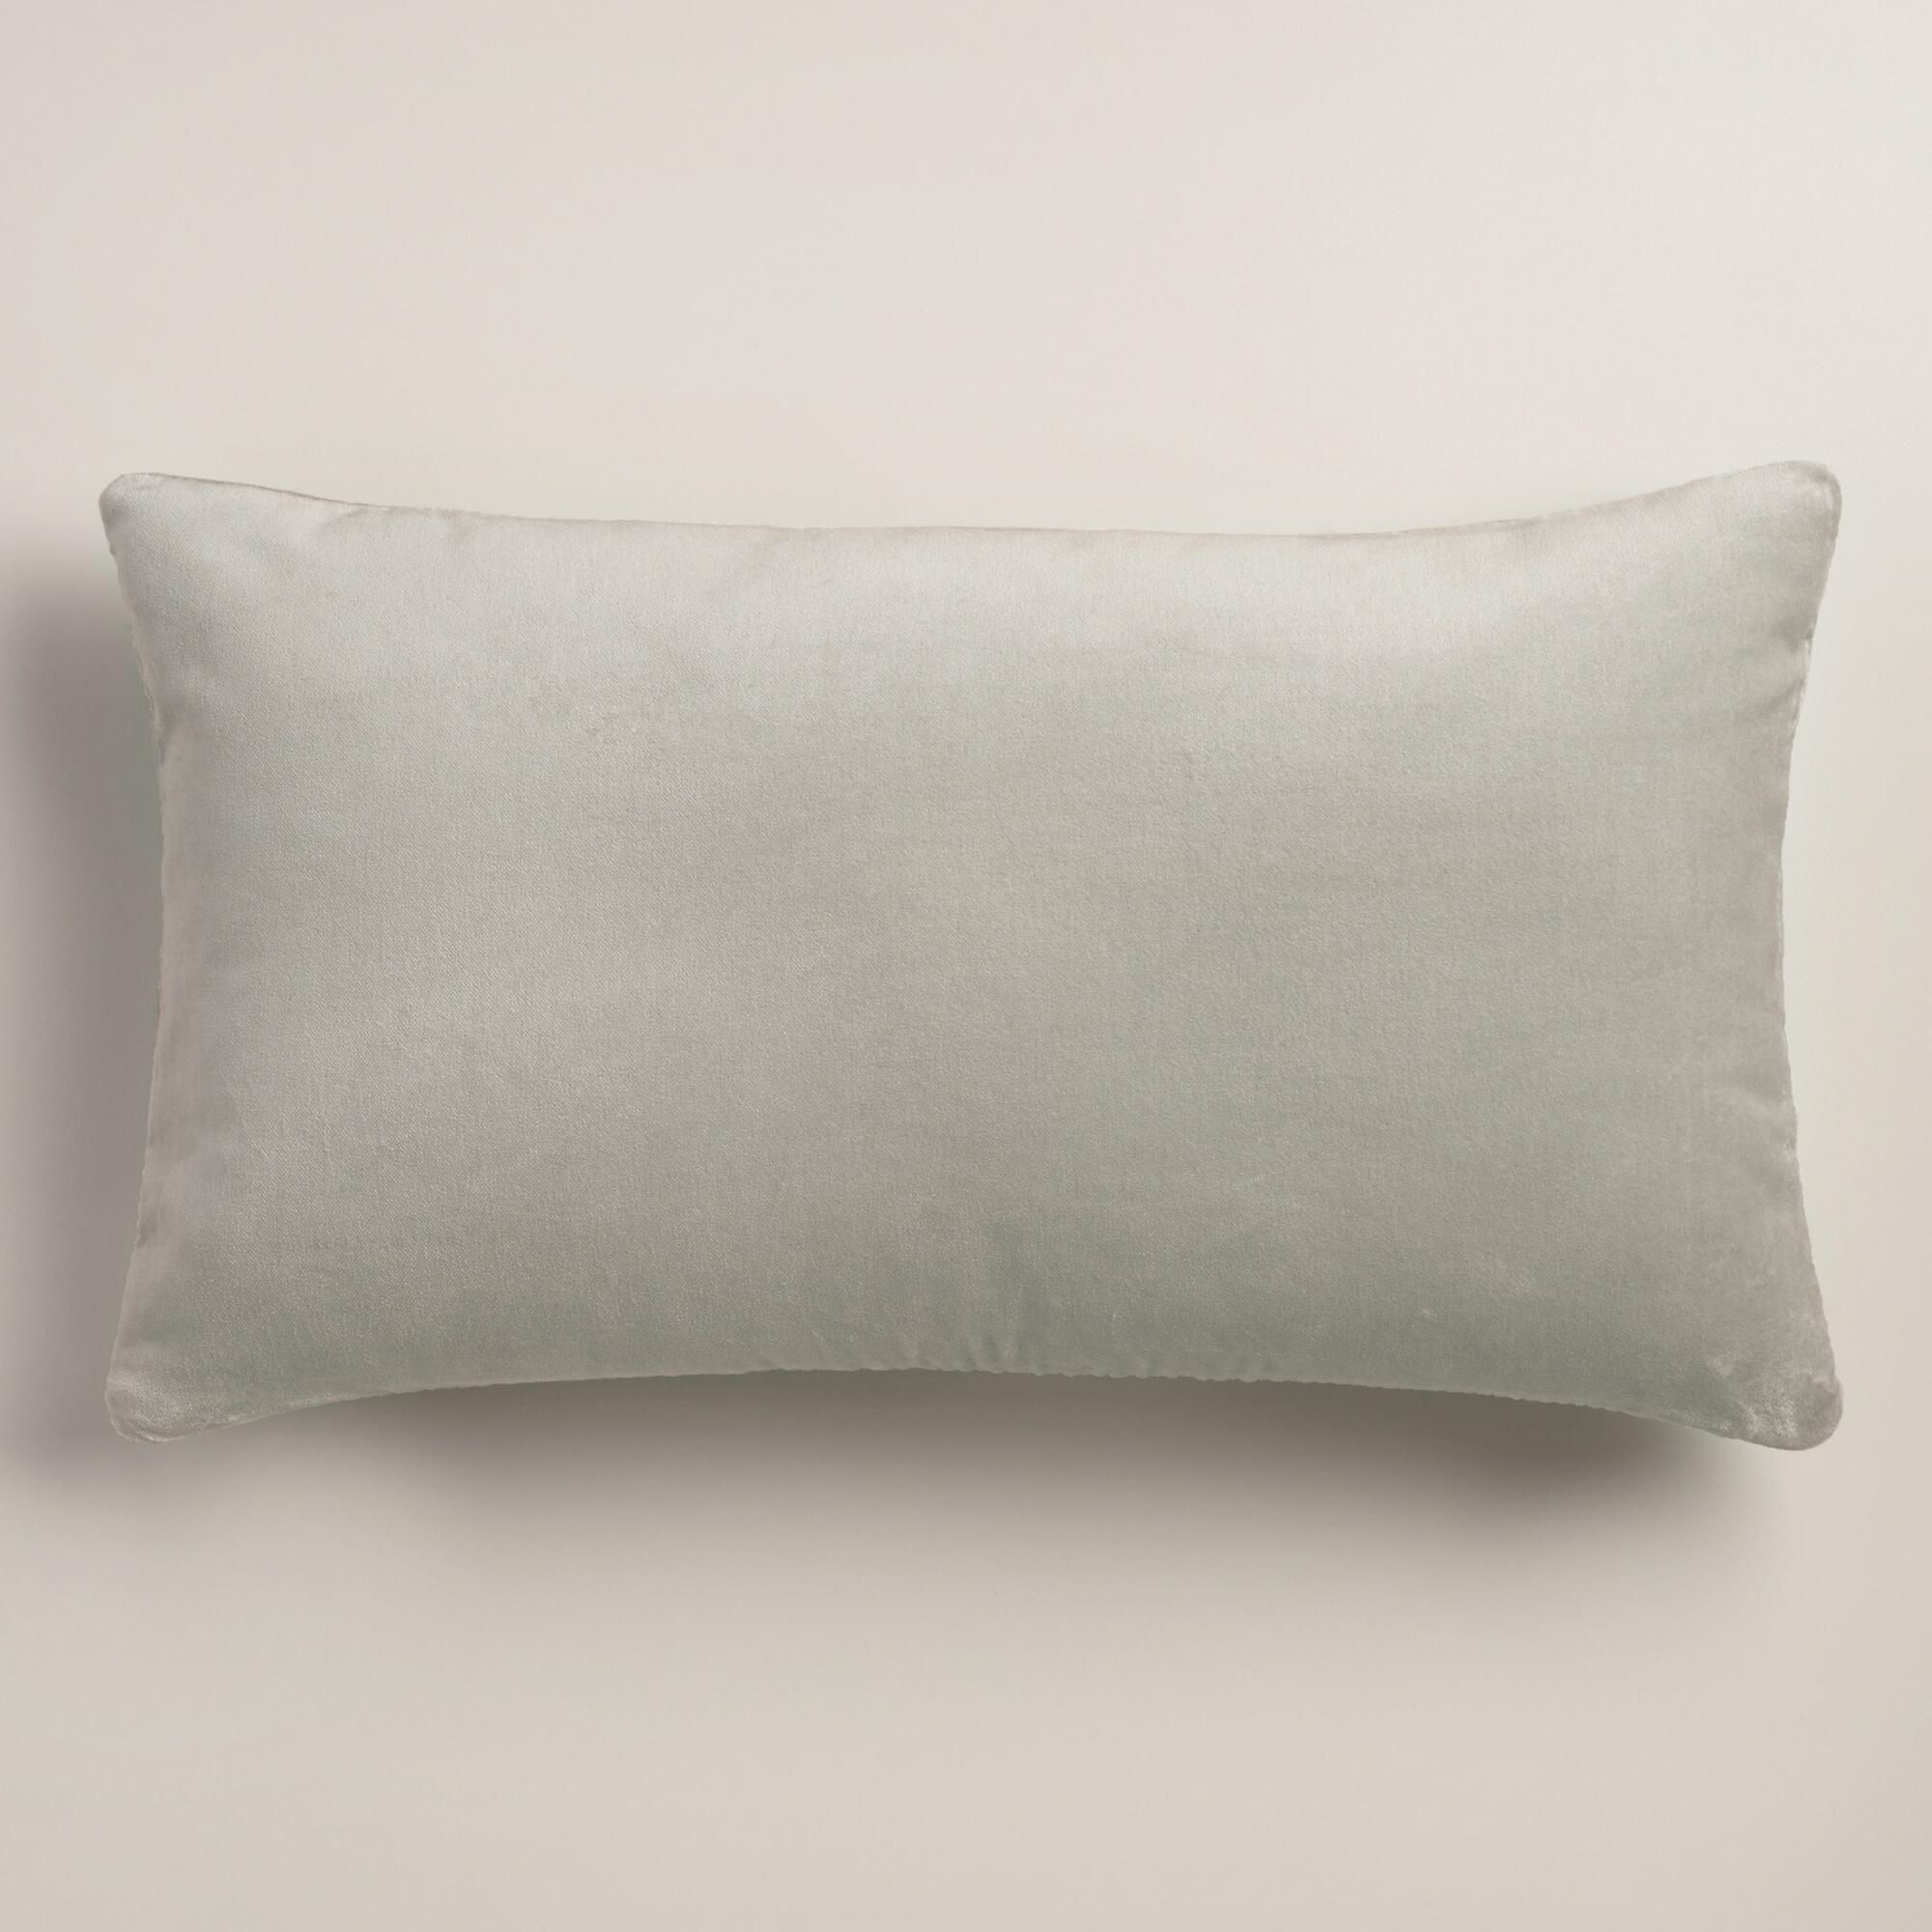 dark lumbar zoom pillow loading poppin block hi pillows furniture res pdp main bpl party darkgray gray